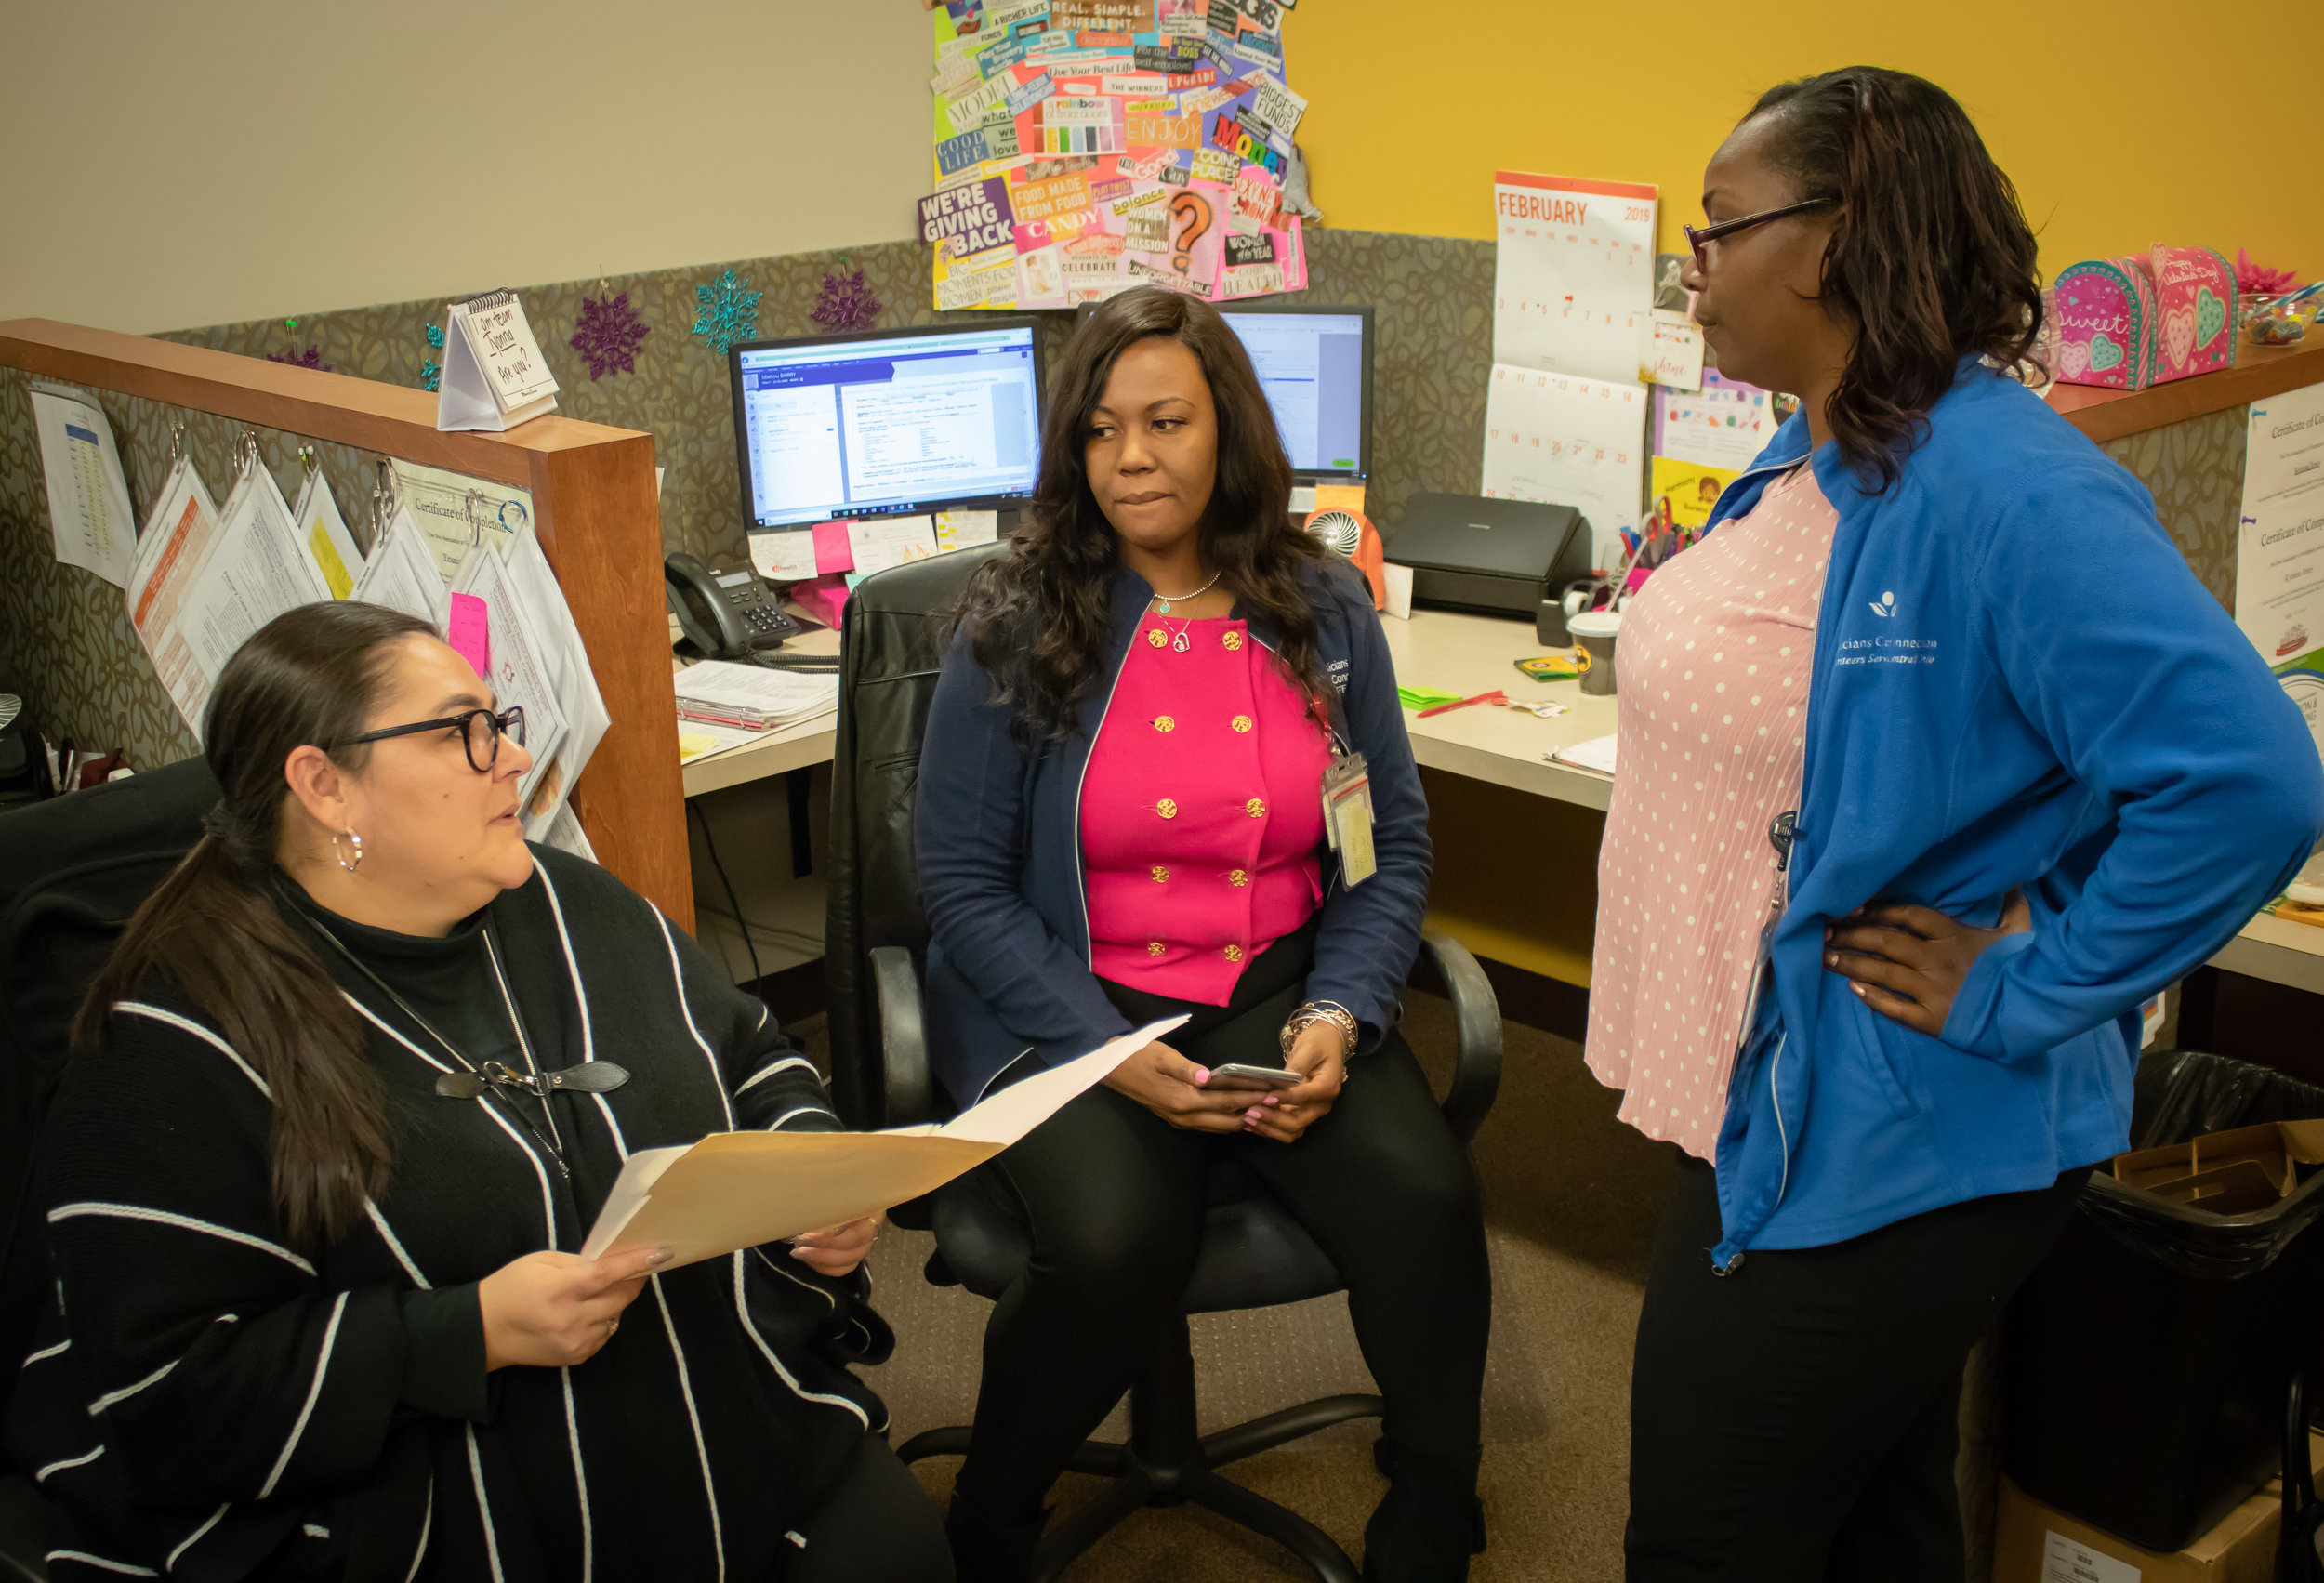 Yesenia Rodriguez (left) discusses a patient's case with her coworkers.